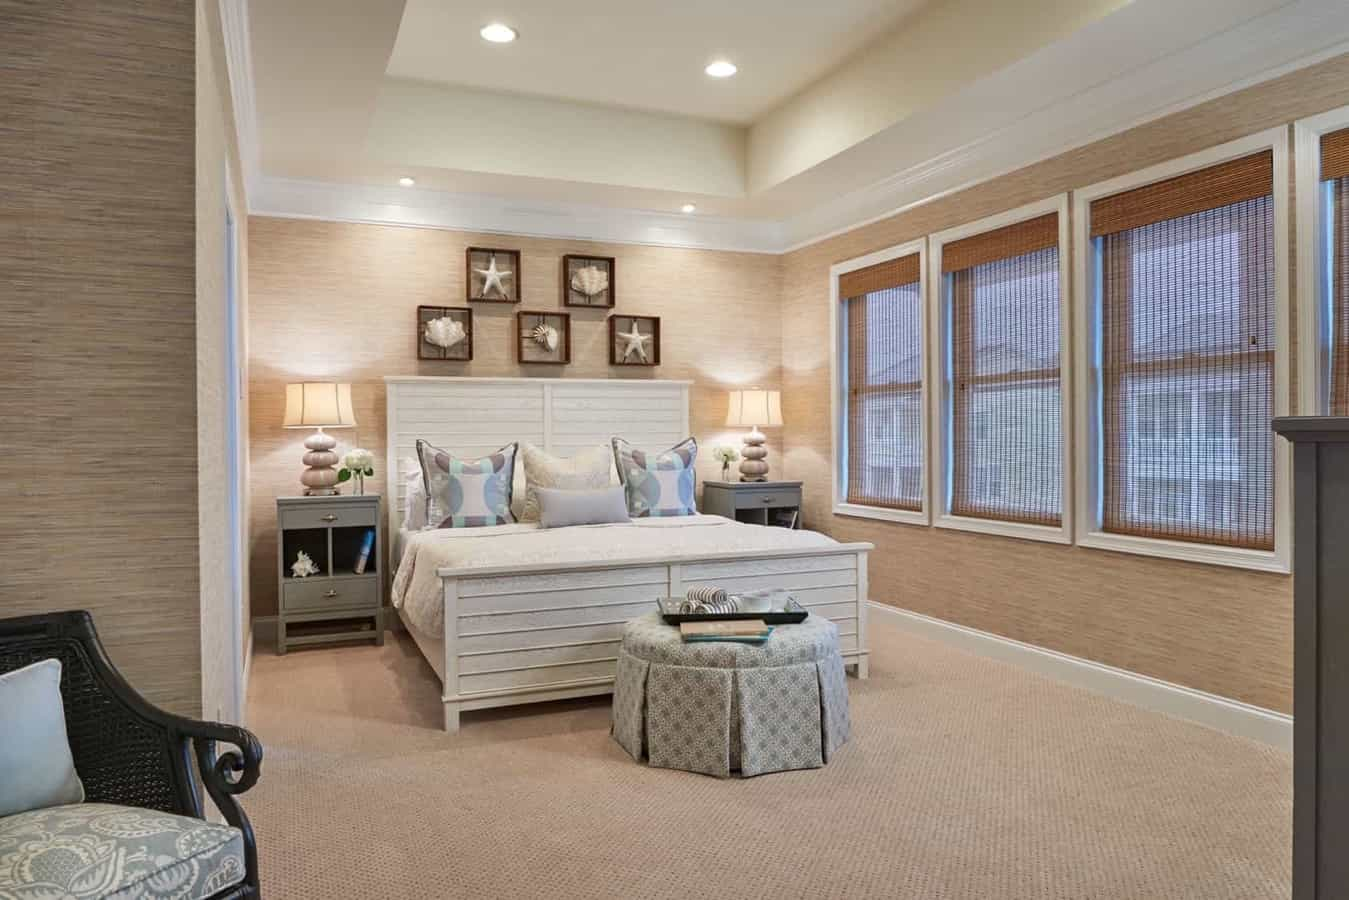 Featured Image of Neutral Bedroom With Bamboo Window Blinds And Paneled Wood Bed Frame